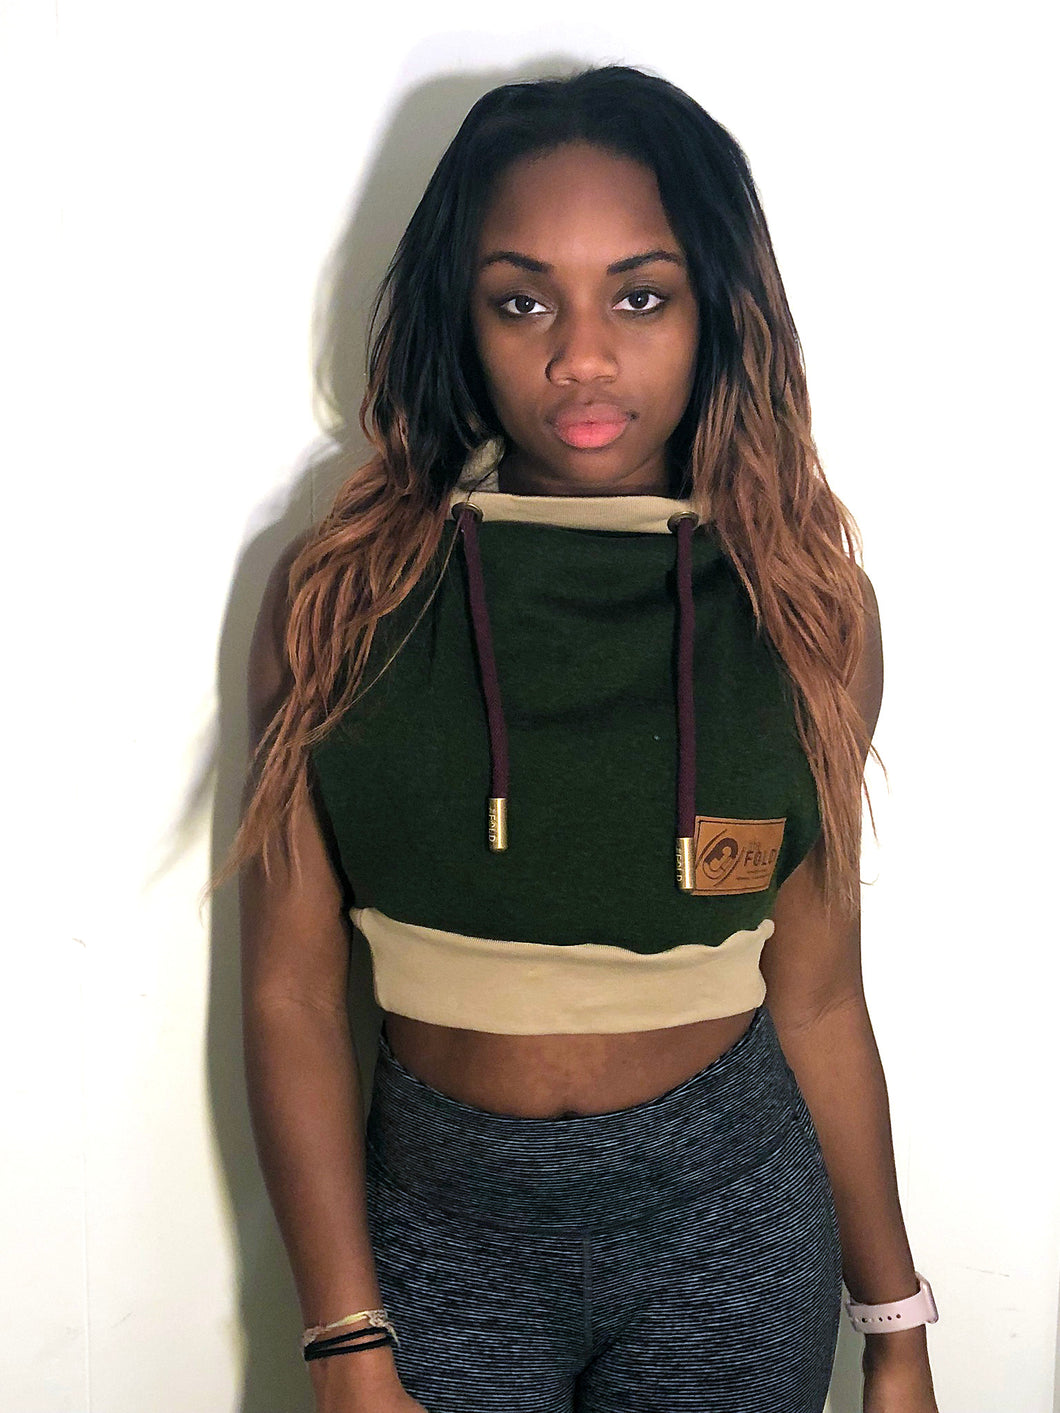 SM/MD Hood Crop Jacket: Deep Olive Sweatshirt with Brown and Burgundy Accents